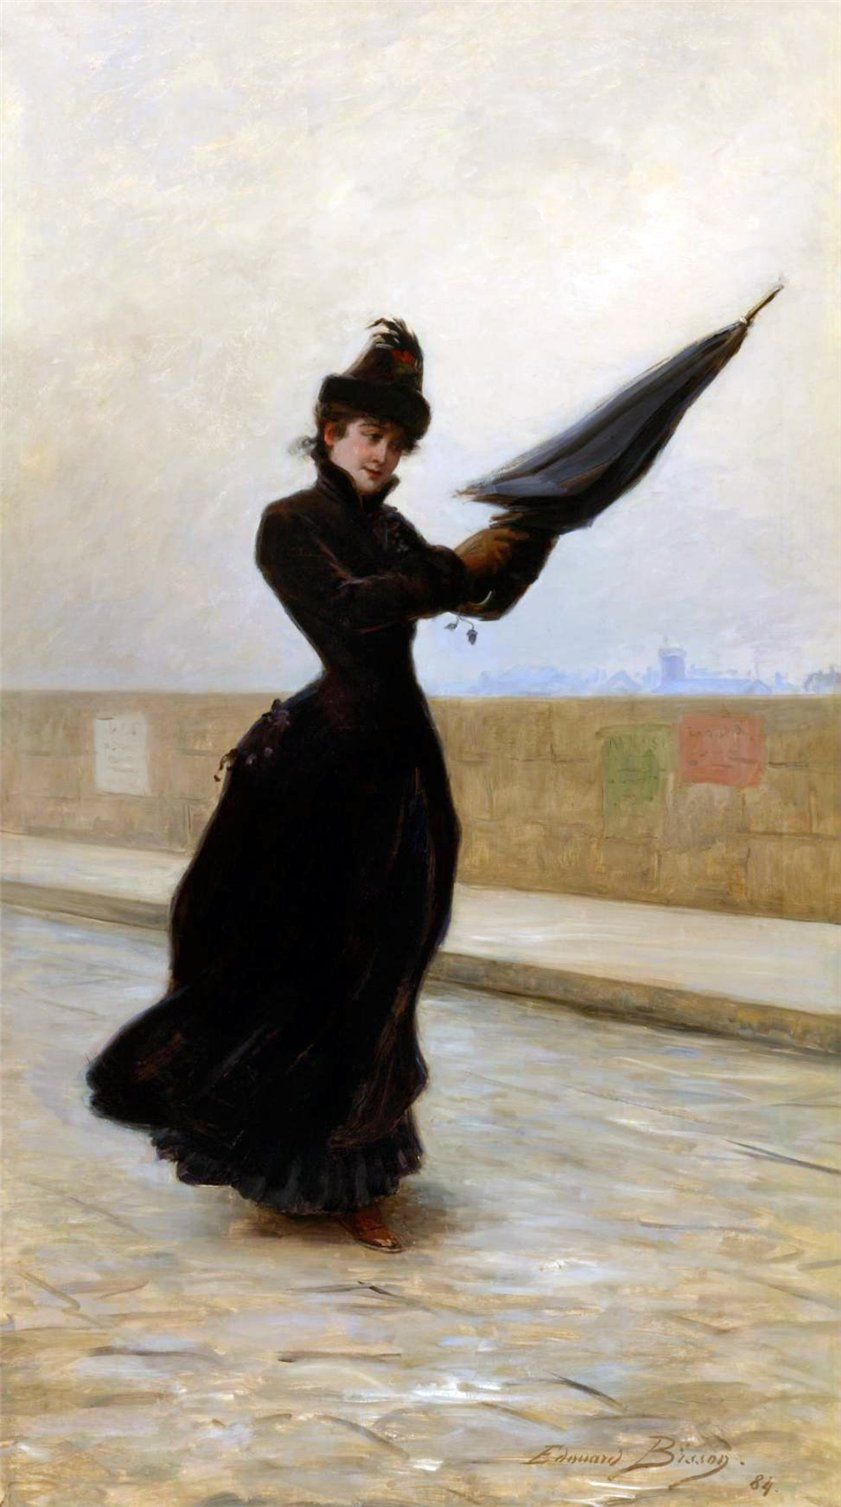 Édouard Bisson Umbrella art, Windy day, Art